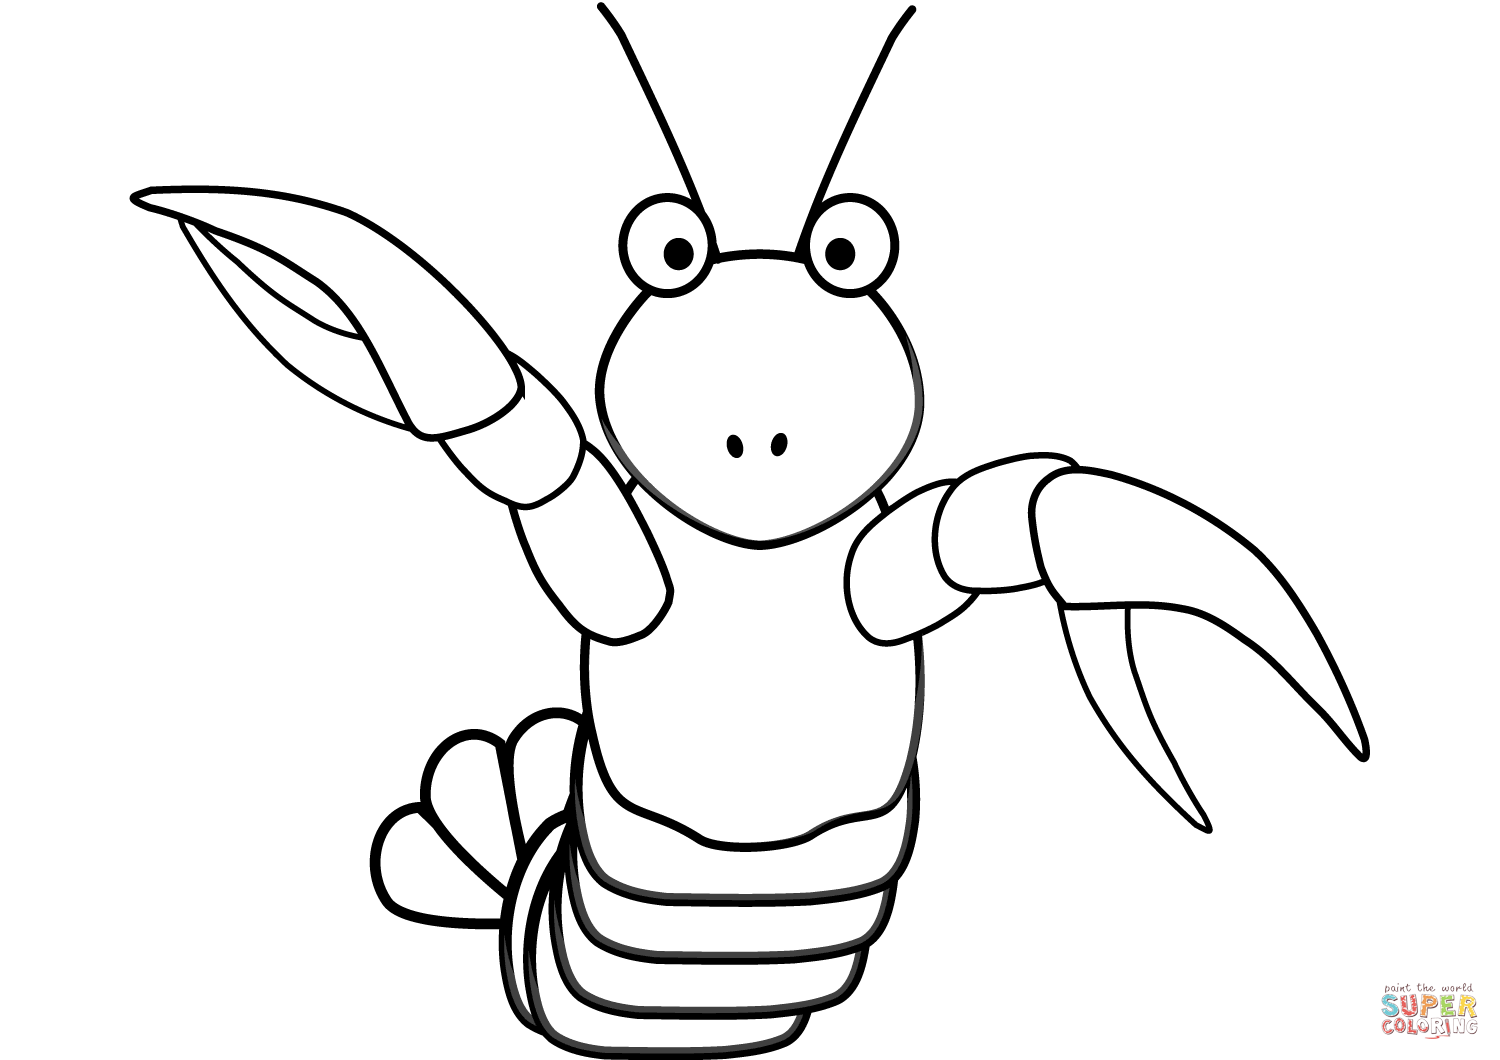 Cartoon Lobster Coloring Page